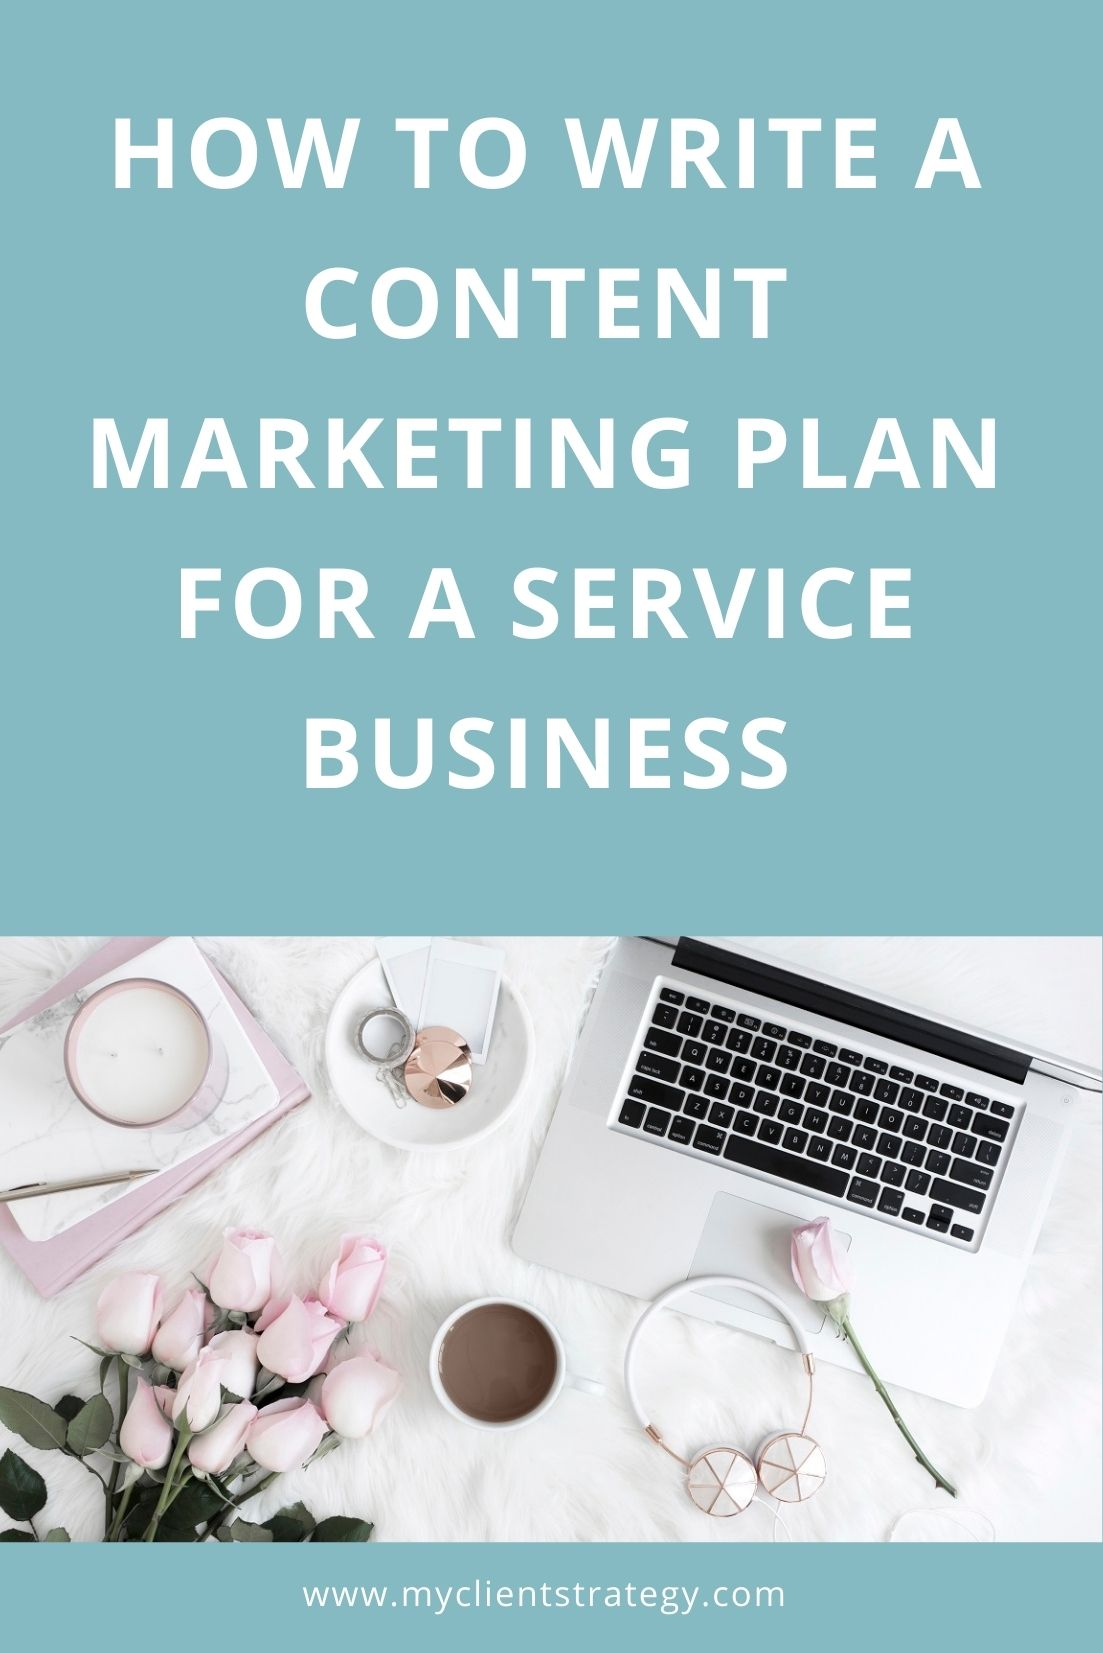 content marketing plan for a service business